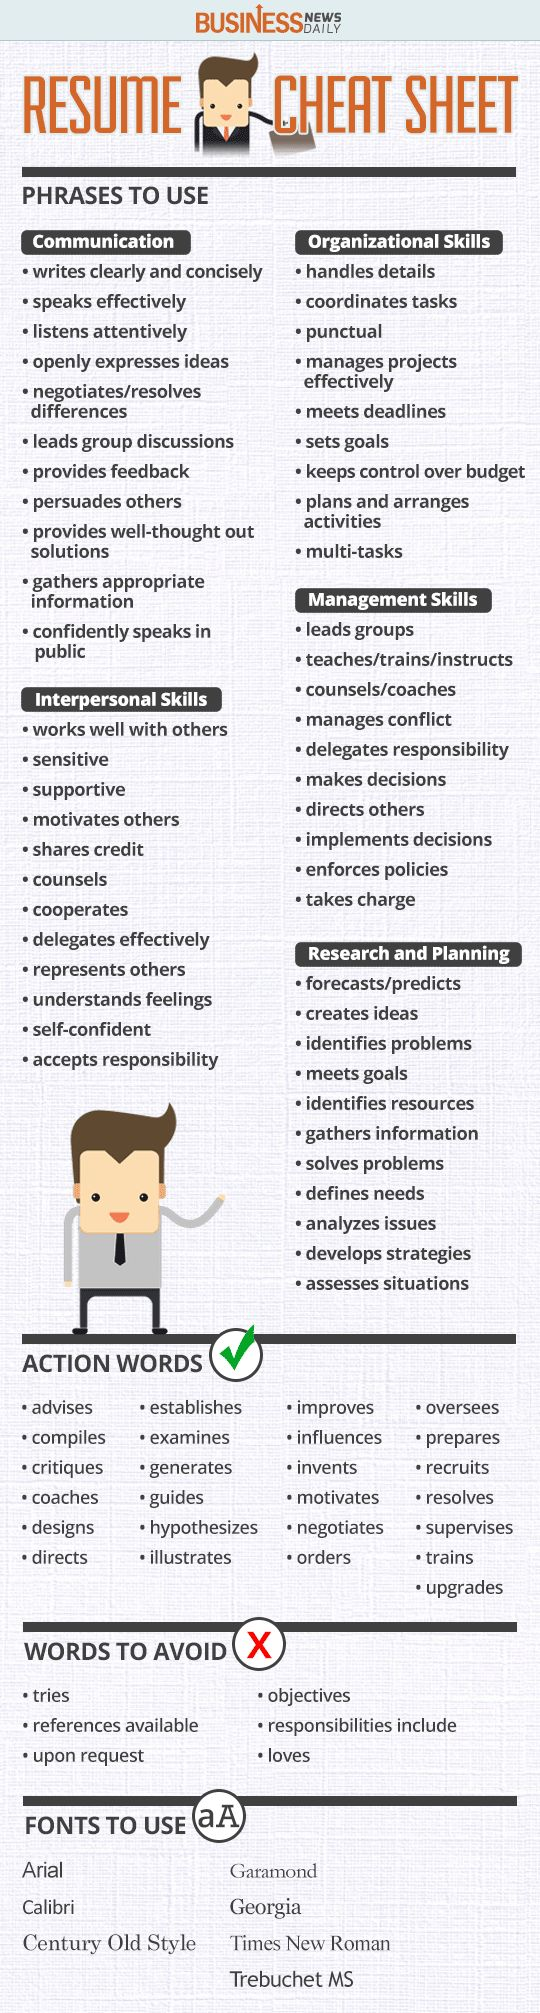 Picnictoimpeachus  Unique  Ideas About Resume On Pinterest  Cv Format Resume Cv And  With Exquisite Resume Cheat Sheet Infographic Andrews Almost Done With A Complete Unit On Employment Which With Attractive Sample Acting Resume Also Stylist Resume In Addition Ux Resume And Free Resume App As Well As References For A Resume Additionally Fine Dining Server Resume From Pinterestcom With Picnictoimpeachus  Exquisite  Ideas About Resume On Pinterest  Cv Format Resume Cv And  With Attractive Resume Cheat Sheet Infographic Andrews Almost Done With A Complete Unit On Employment Which And Unique Sample Acting Resume Also Stylist Resume In Addition Ux Resume From Pinterestcom